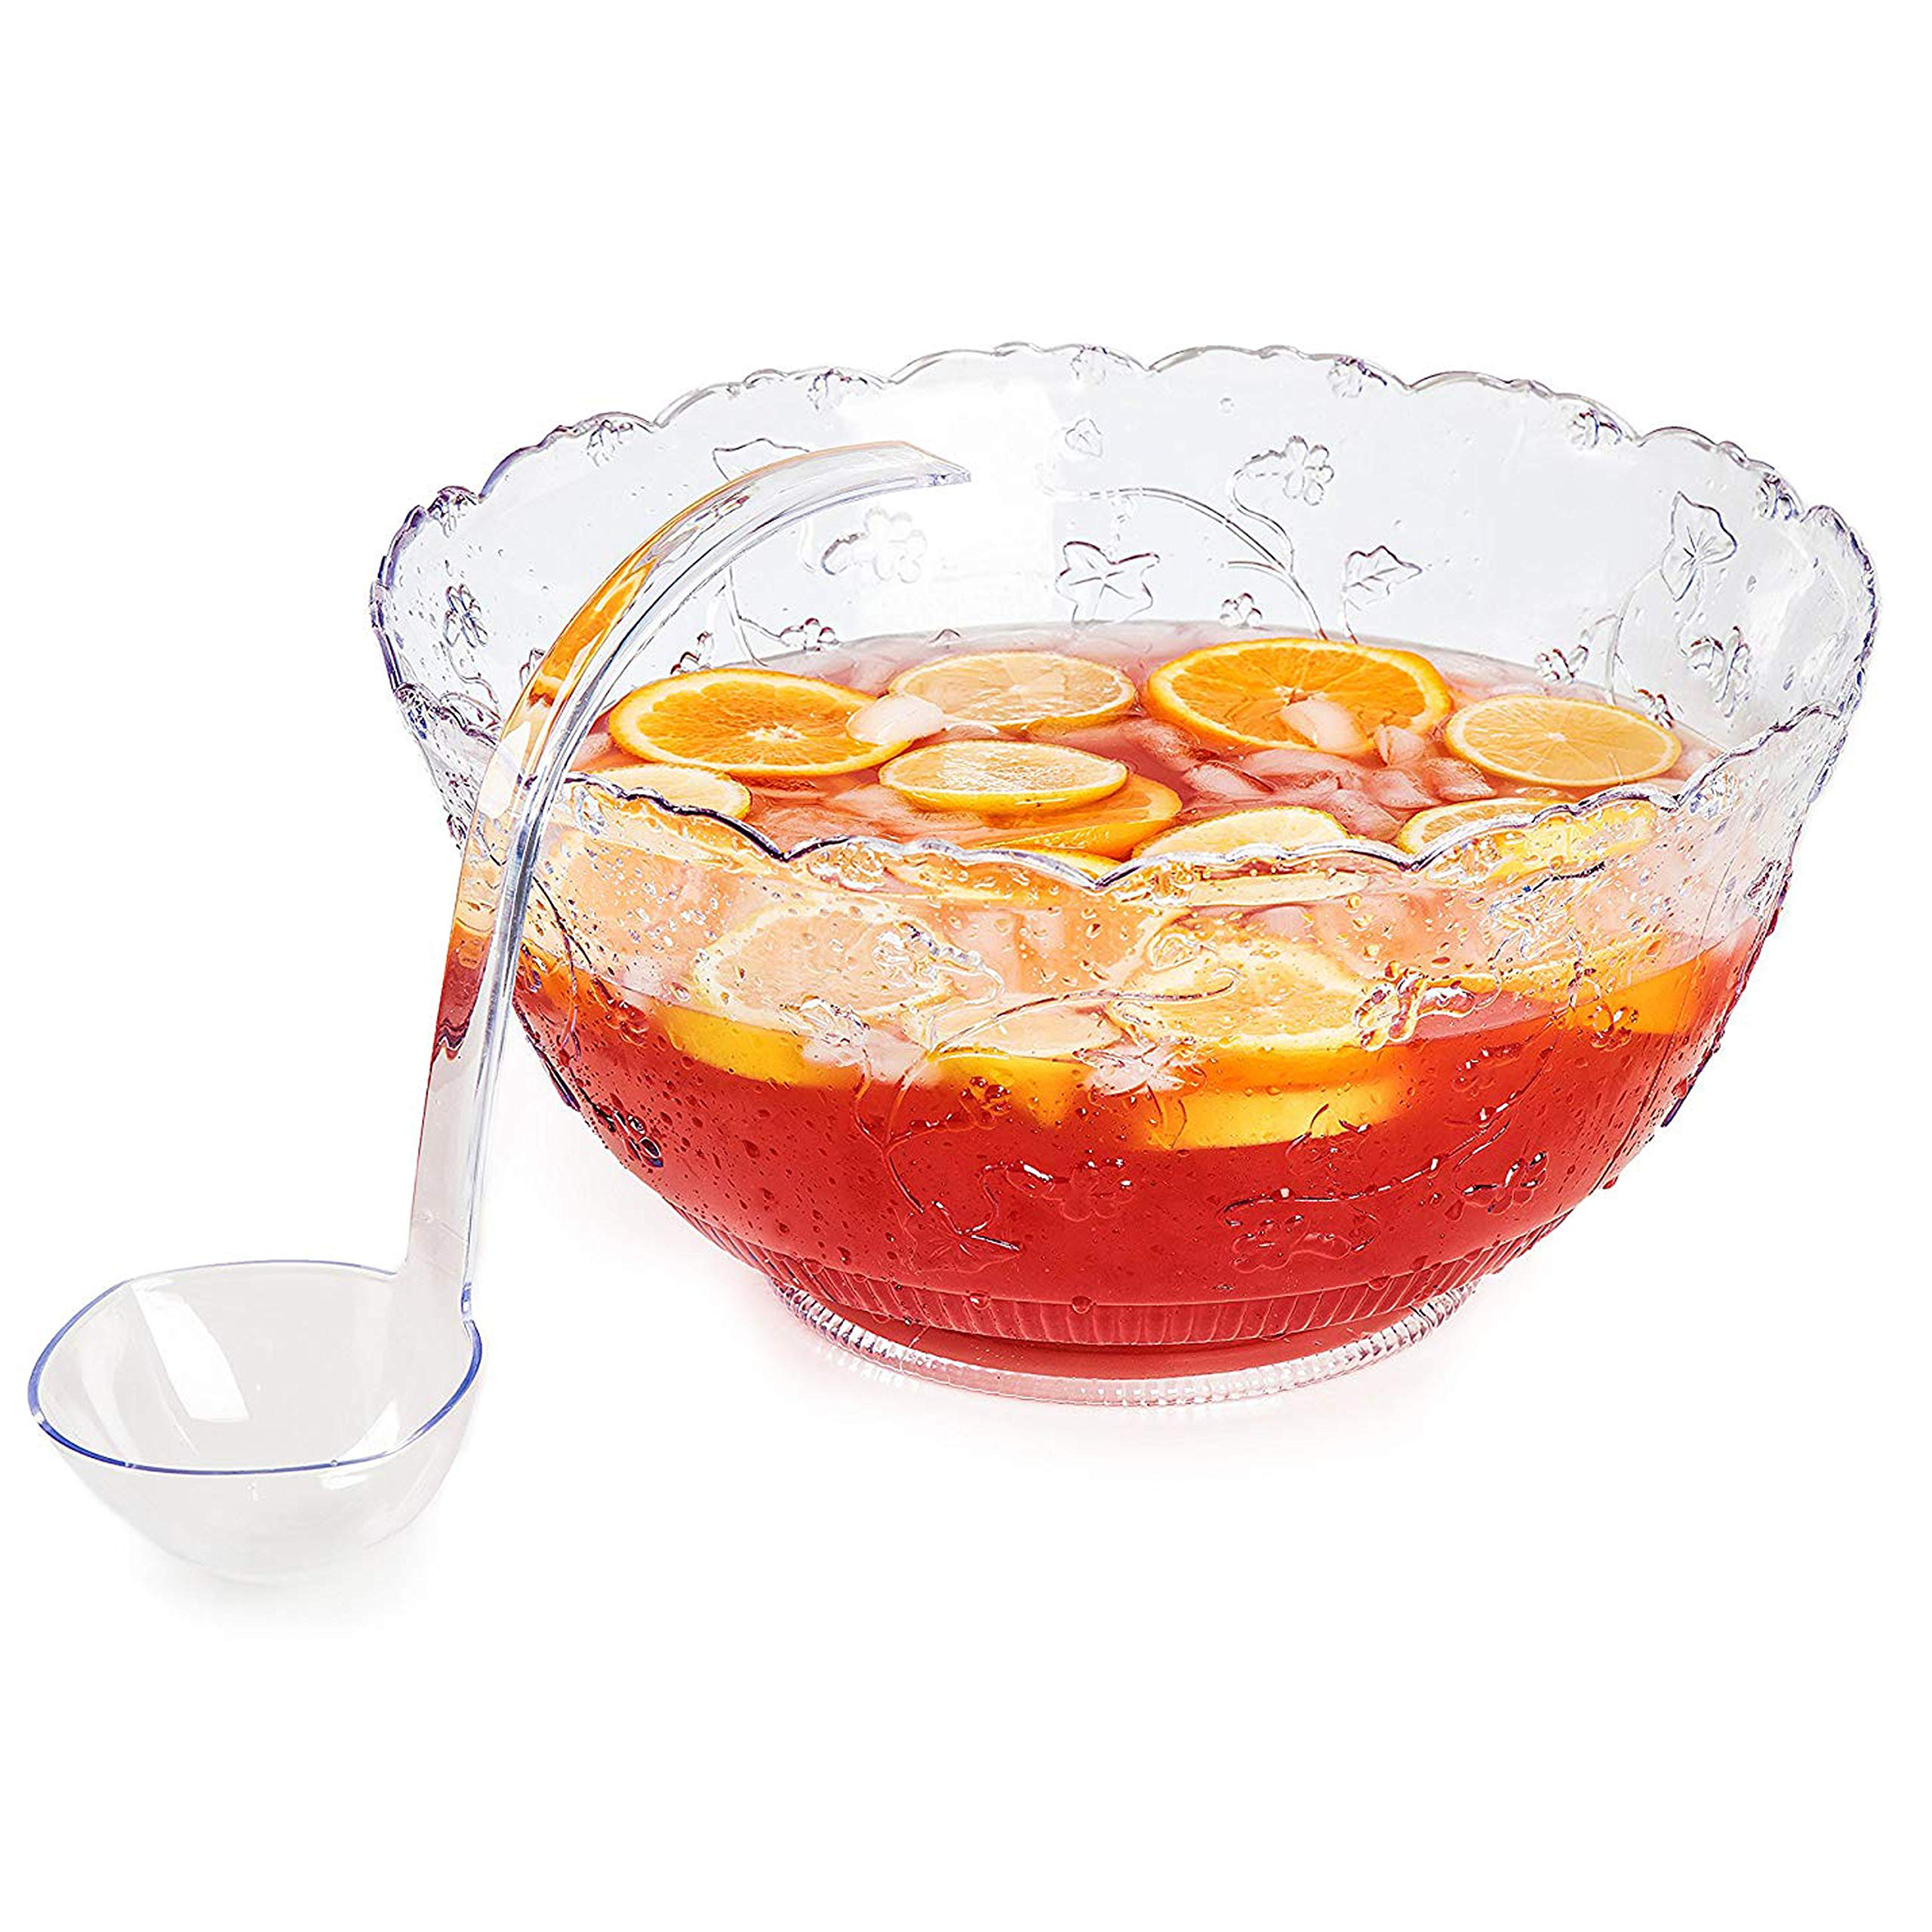 Premium Quality Plastic Punch Bowl With Ladle - Large 2 Gallon Bowl With 5 oz Ladle by Upper Midland Products by Upper Midland Products